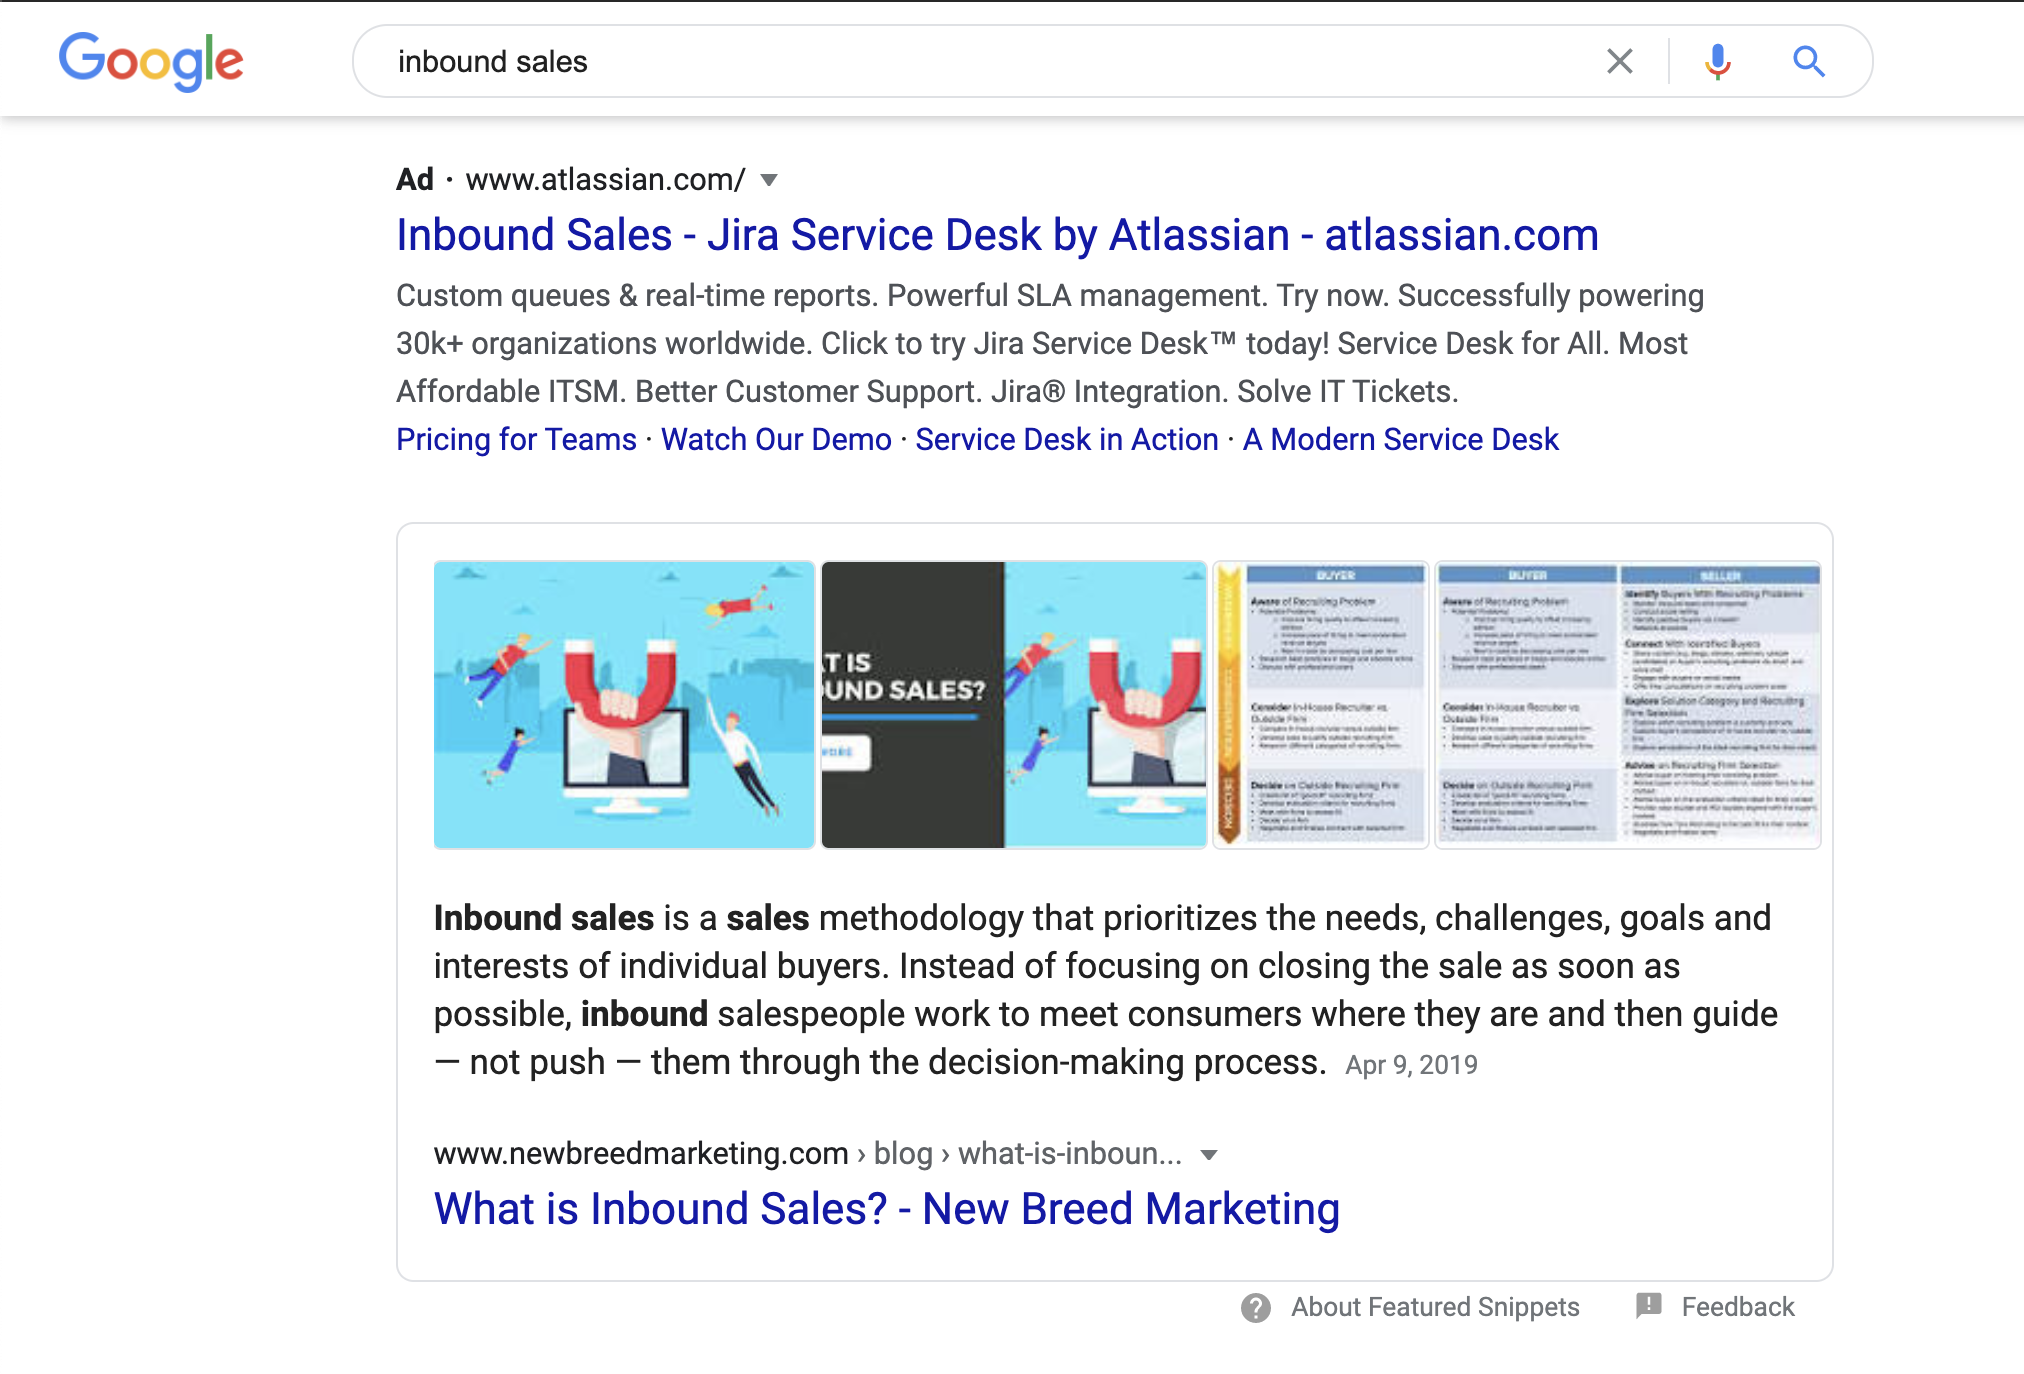 Featured snippet of New Breed for Inbound Sales